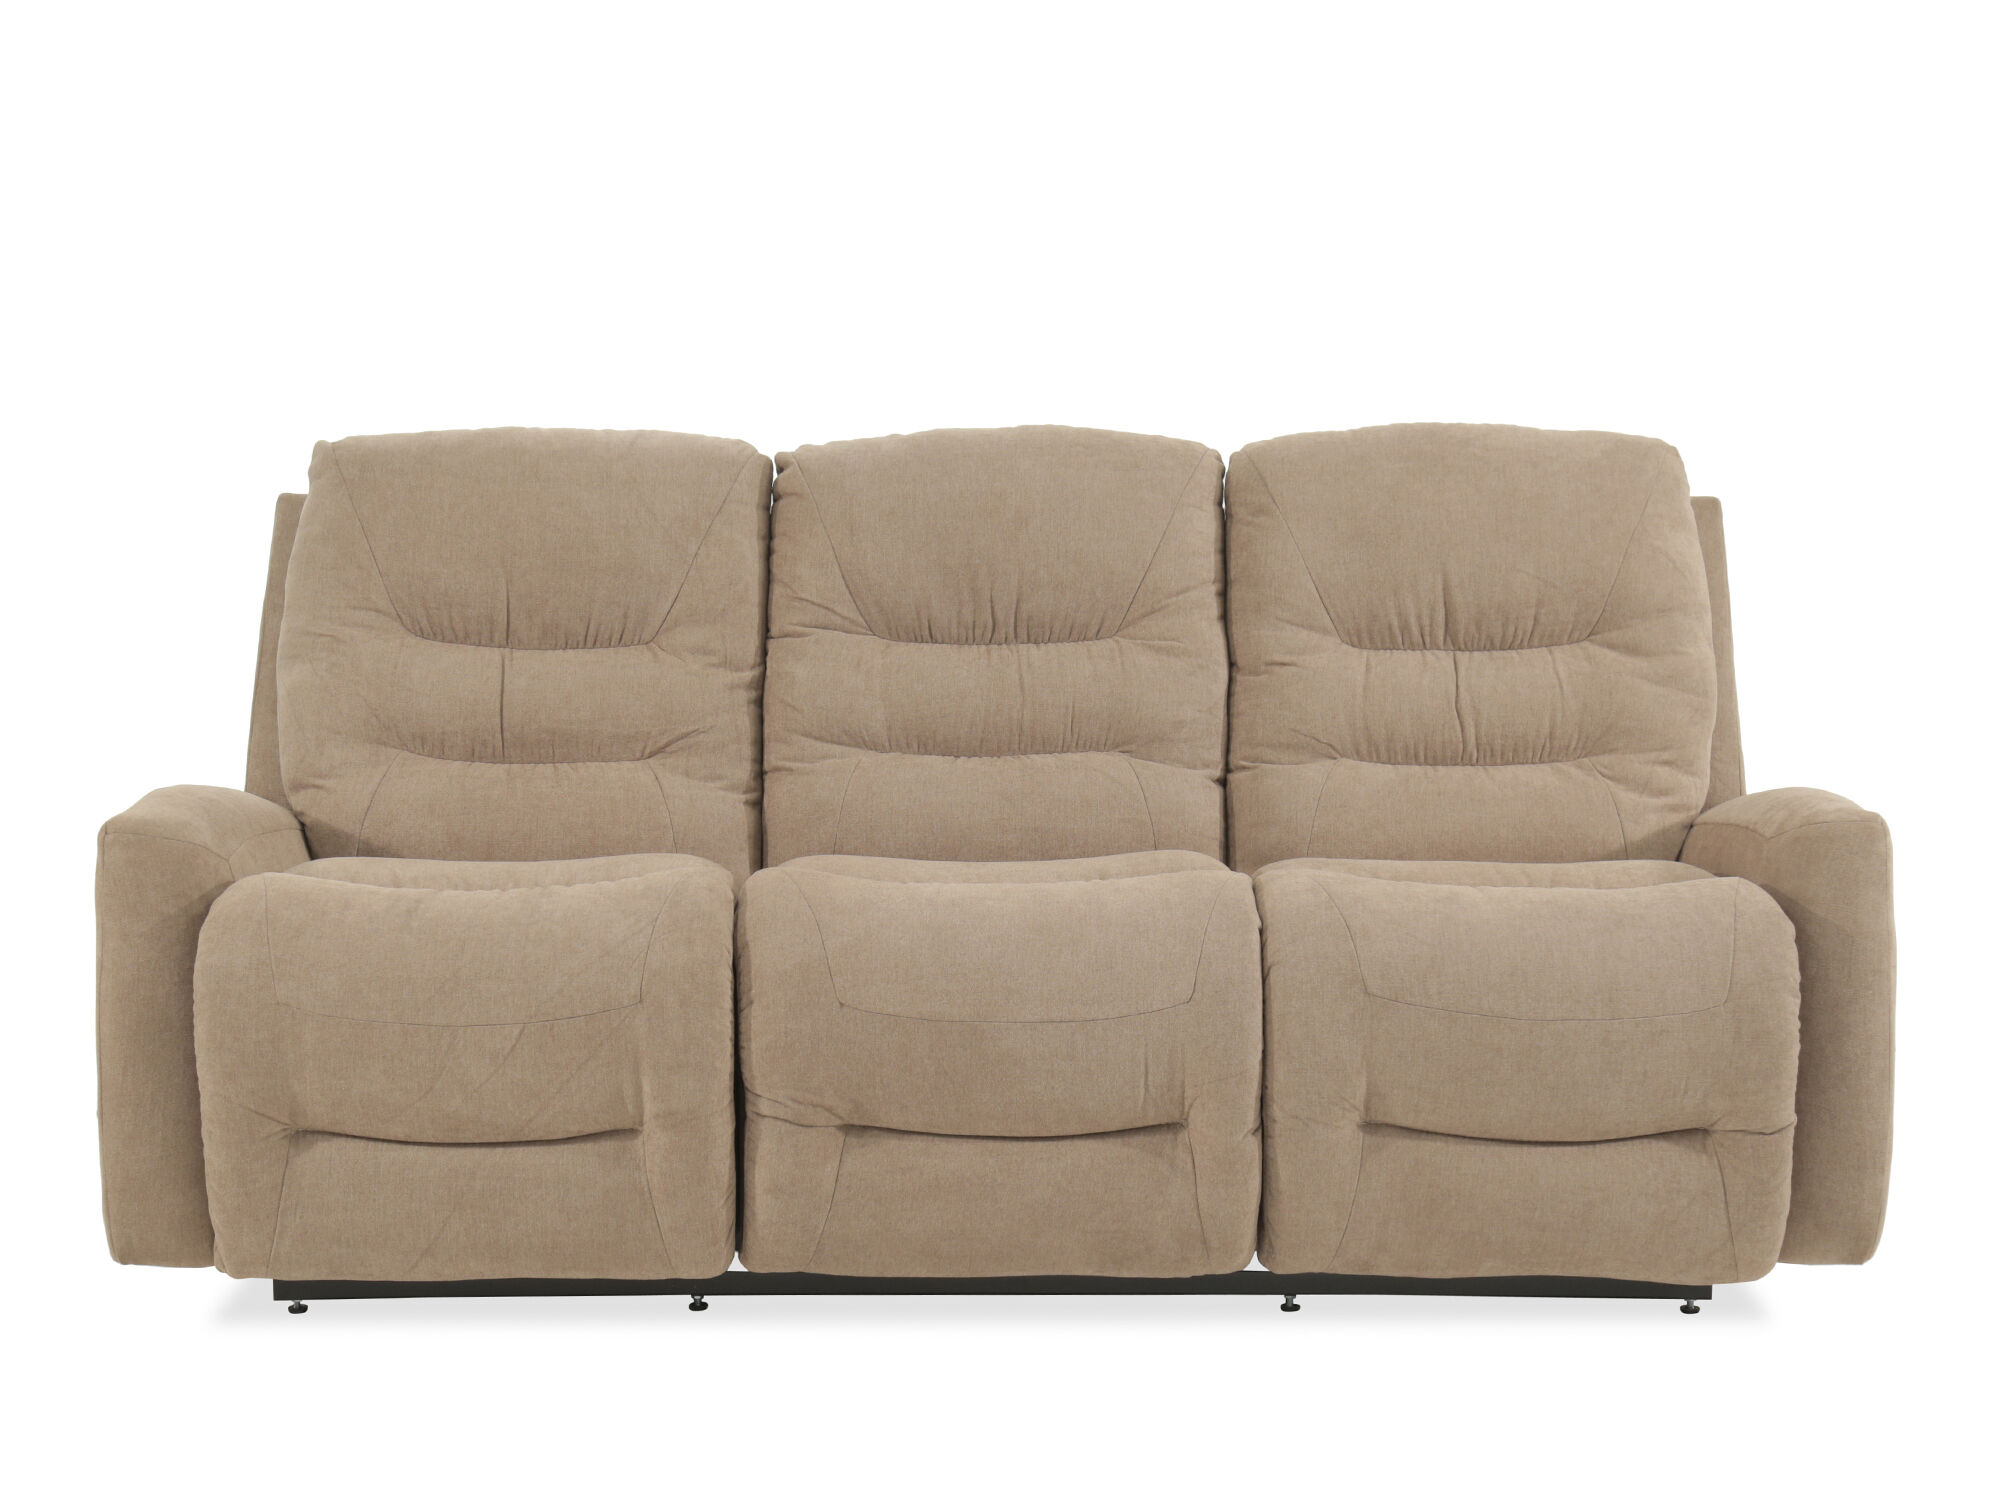 LaZBoy Furniture Mathis Brothers Furniture